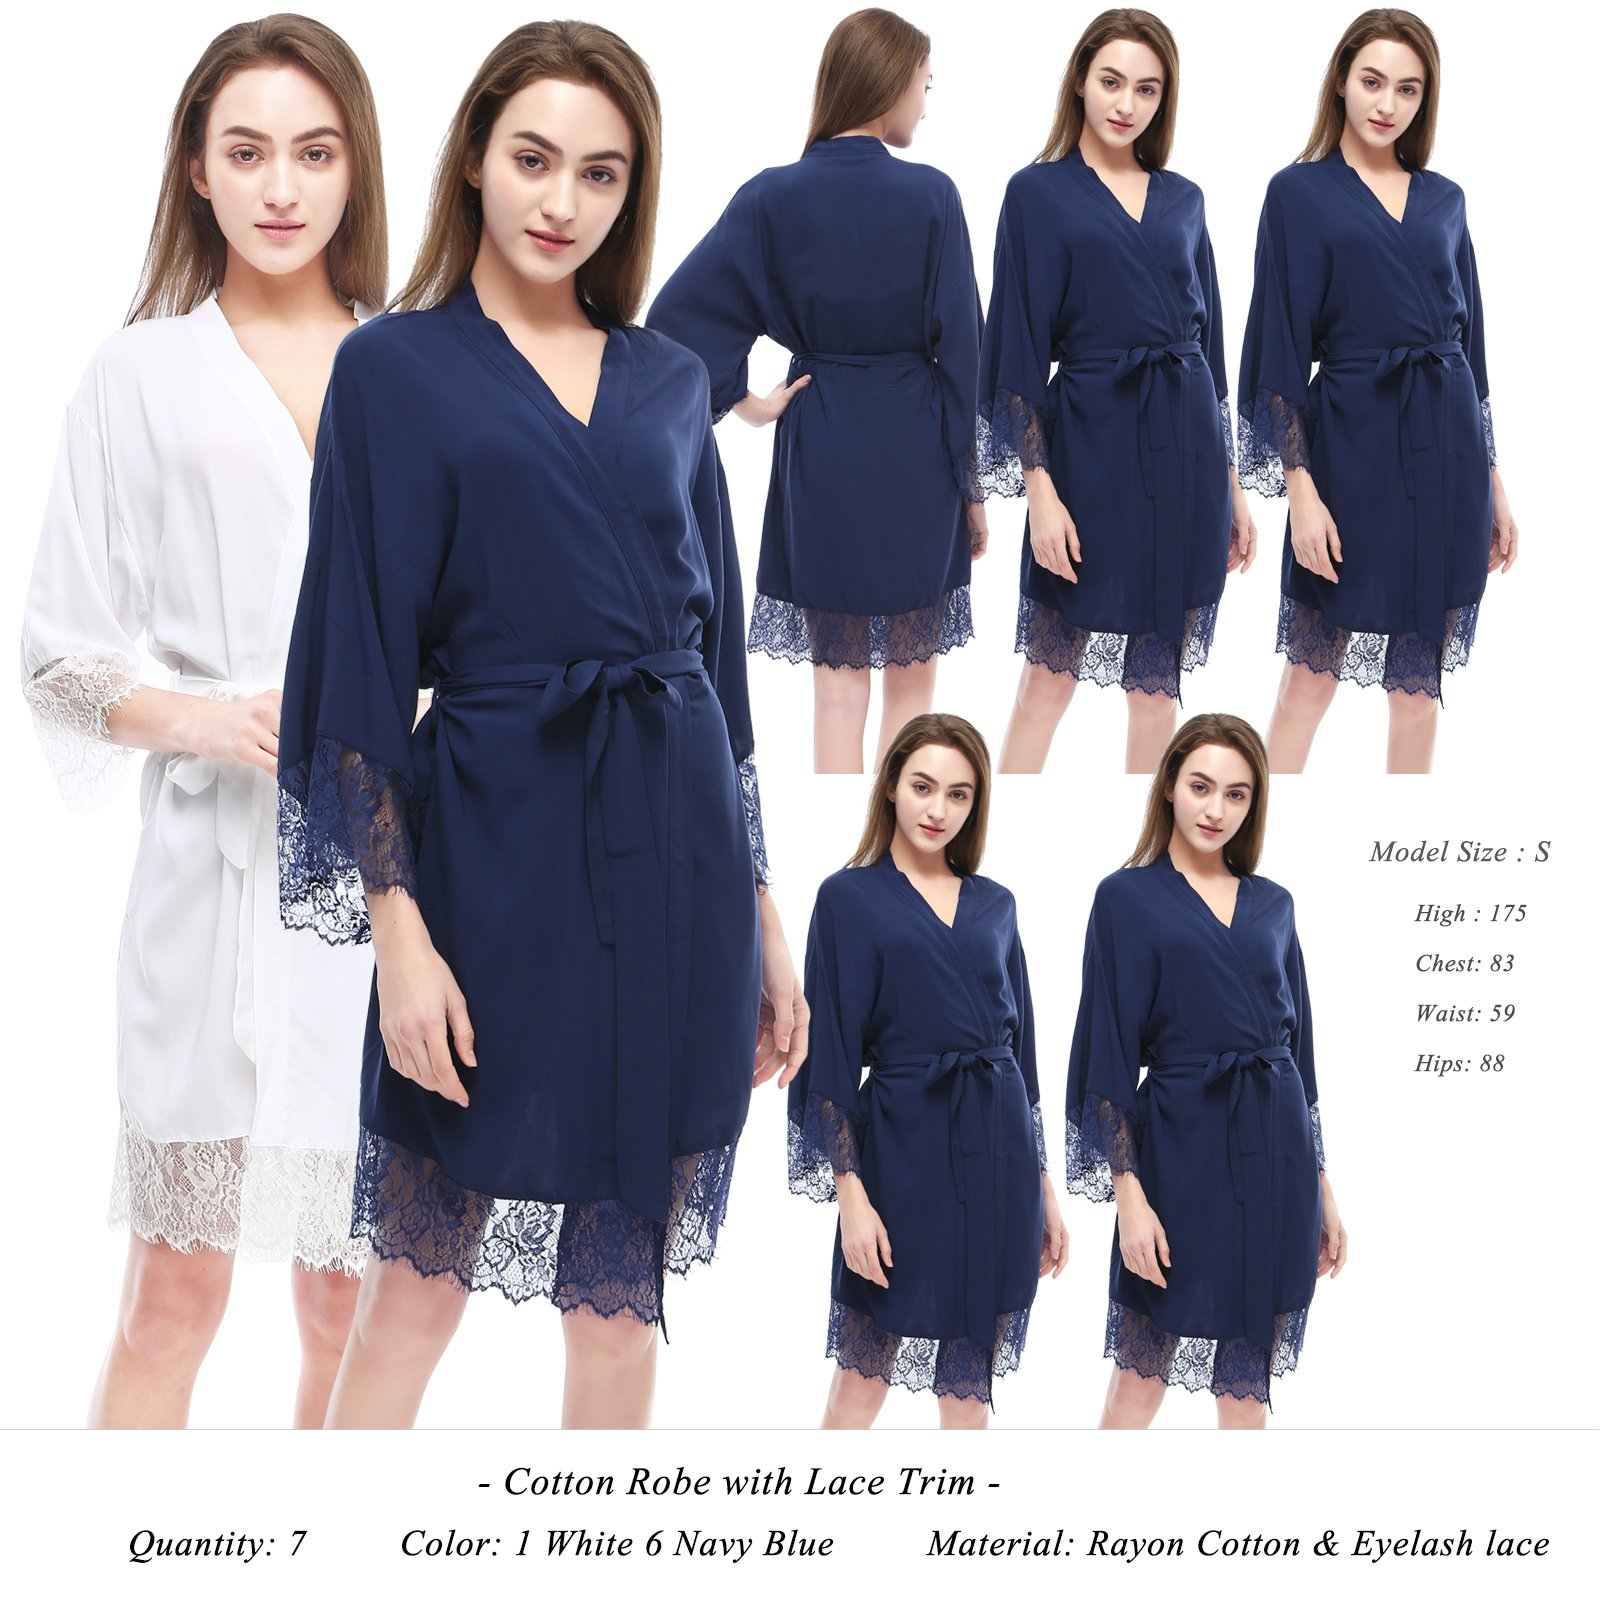 PROGULOVER Set Of 7 Women's Cotton Kimono Robe With Lace Trim For Bride and Bridesmaid Wedding Party Gift Dressing Gown